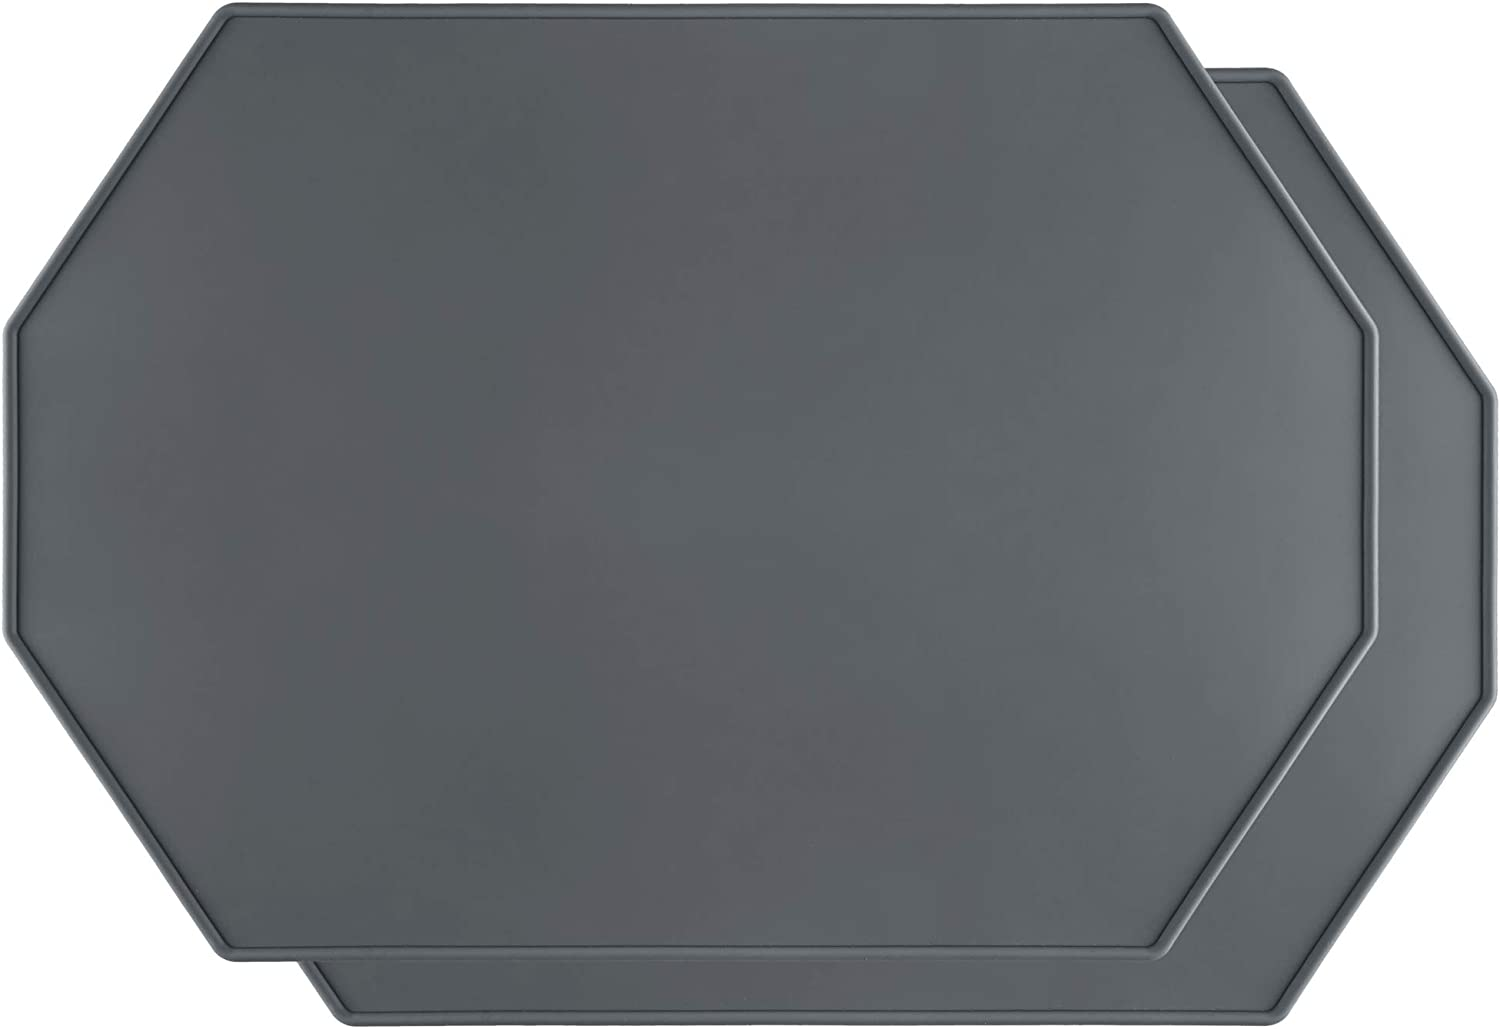 Lazy K Silicone Placemats - Octagon with Raised Edges - Non Slip Waterproof - Simple Modern Design - Heat-Resistant Kitchen Table Mats - Grey (Set of 2)